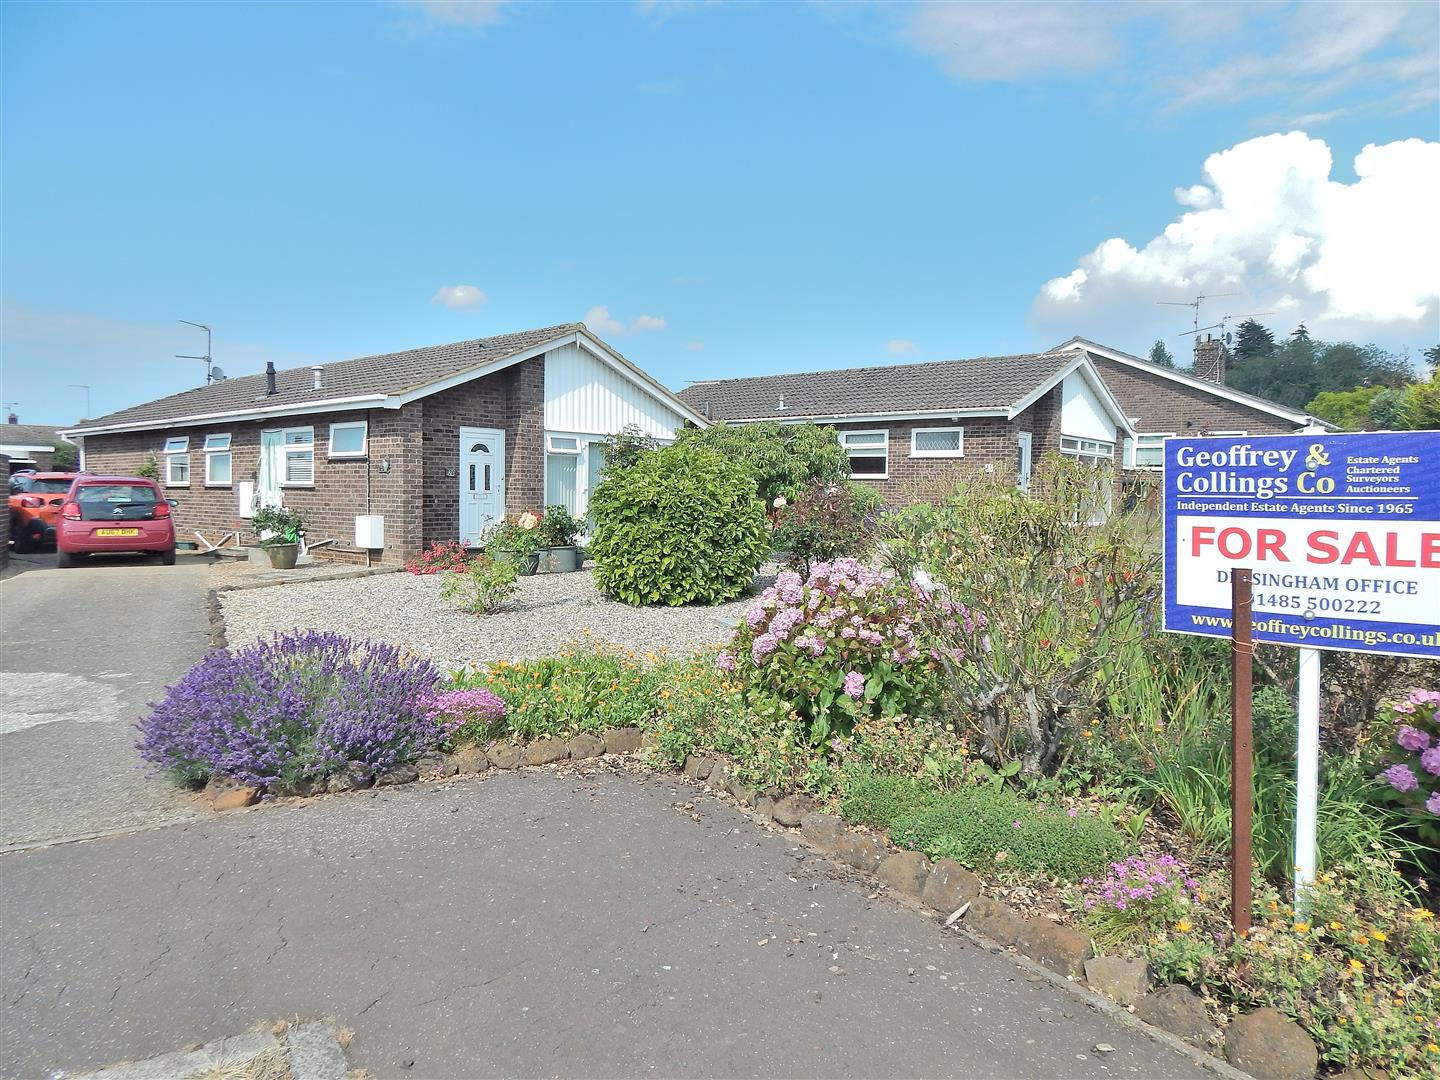 3 bed detached bungalow for sale in King's Lynn, PE31 6PG  - Property Image 1